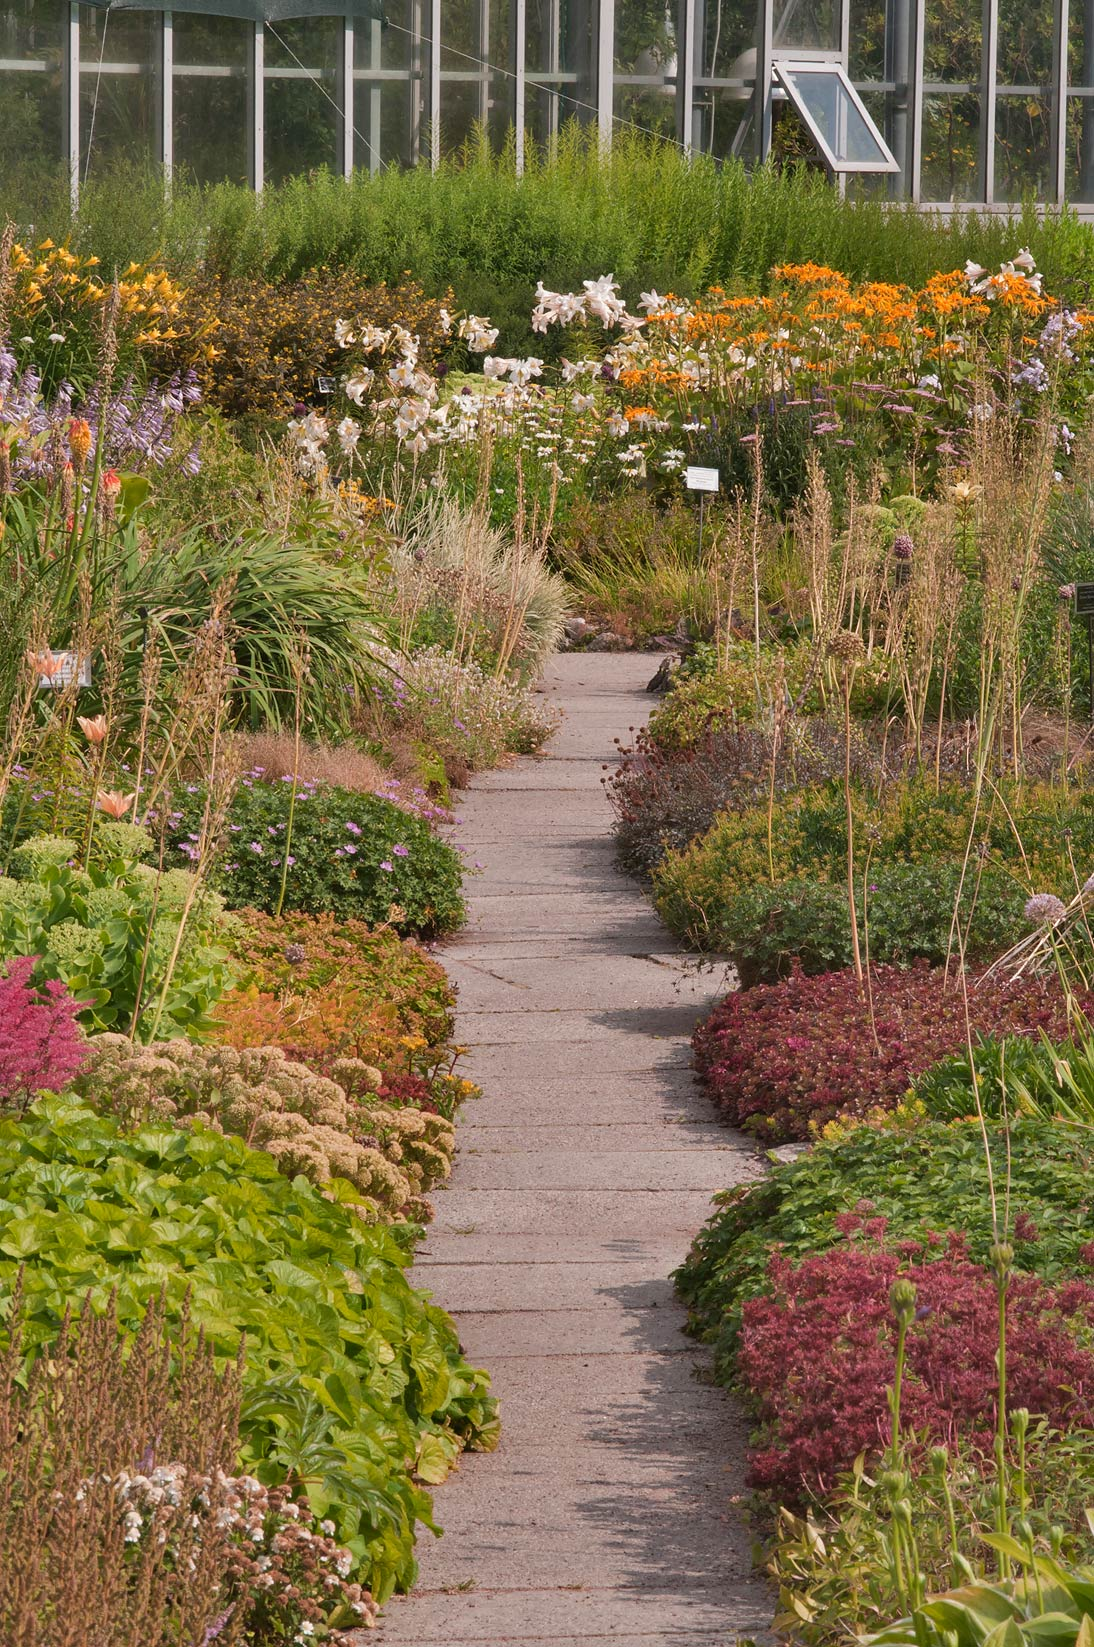 Path through flower beds in Botanic Gardens of...Institute. St.Petersburg, Russia